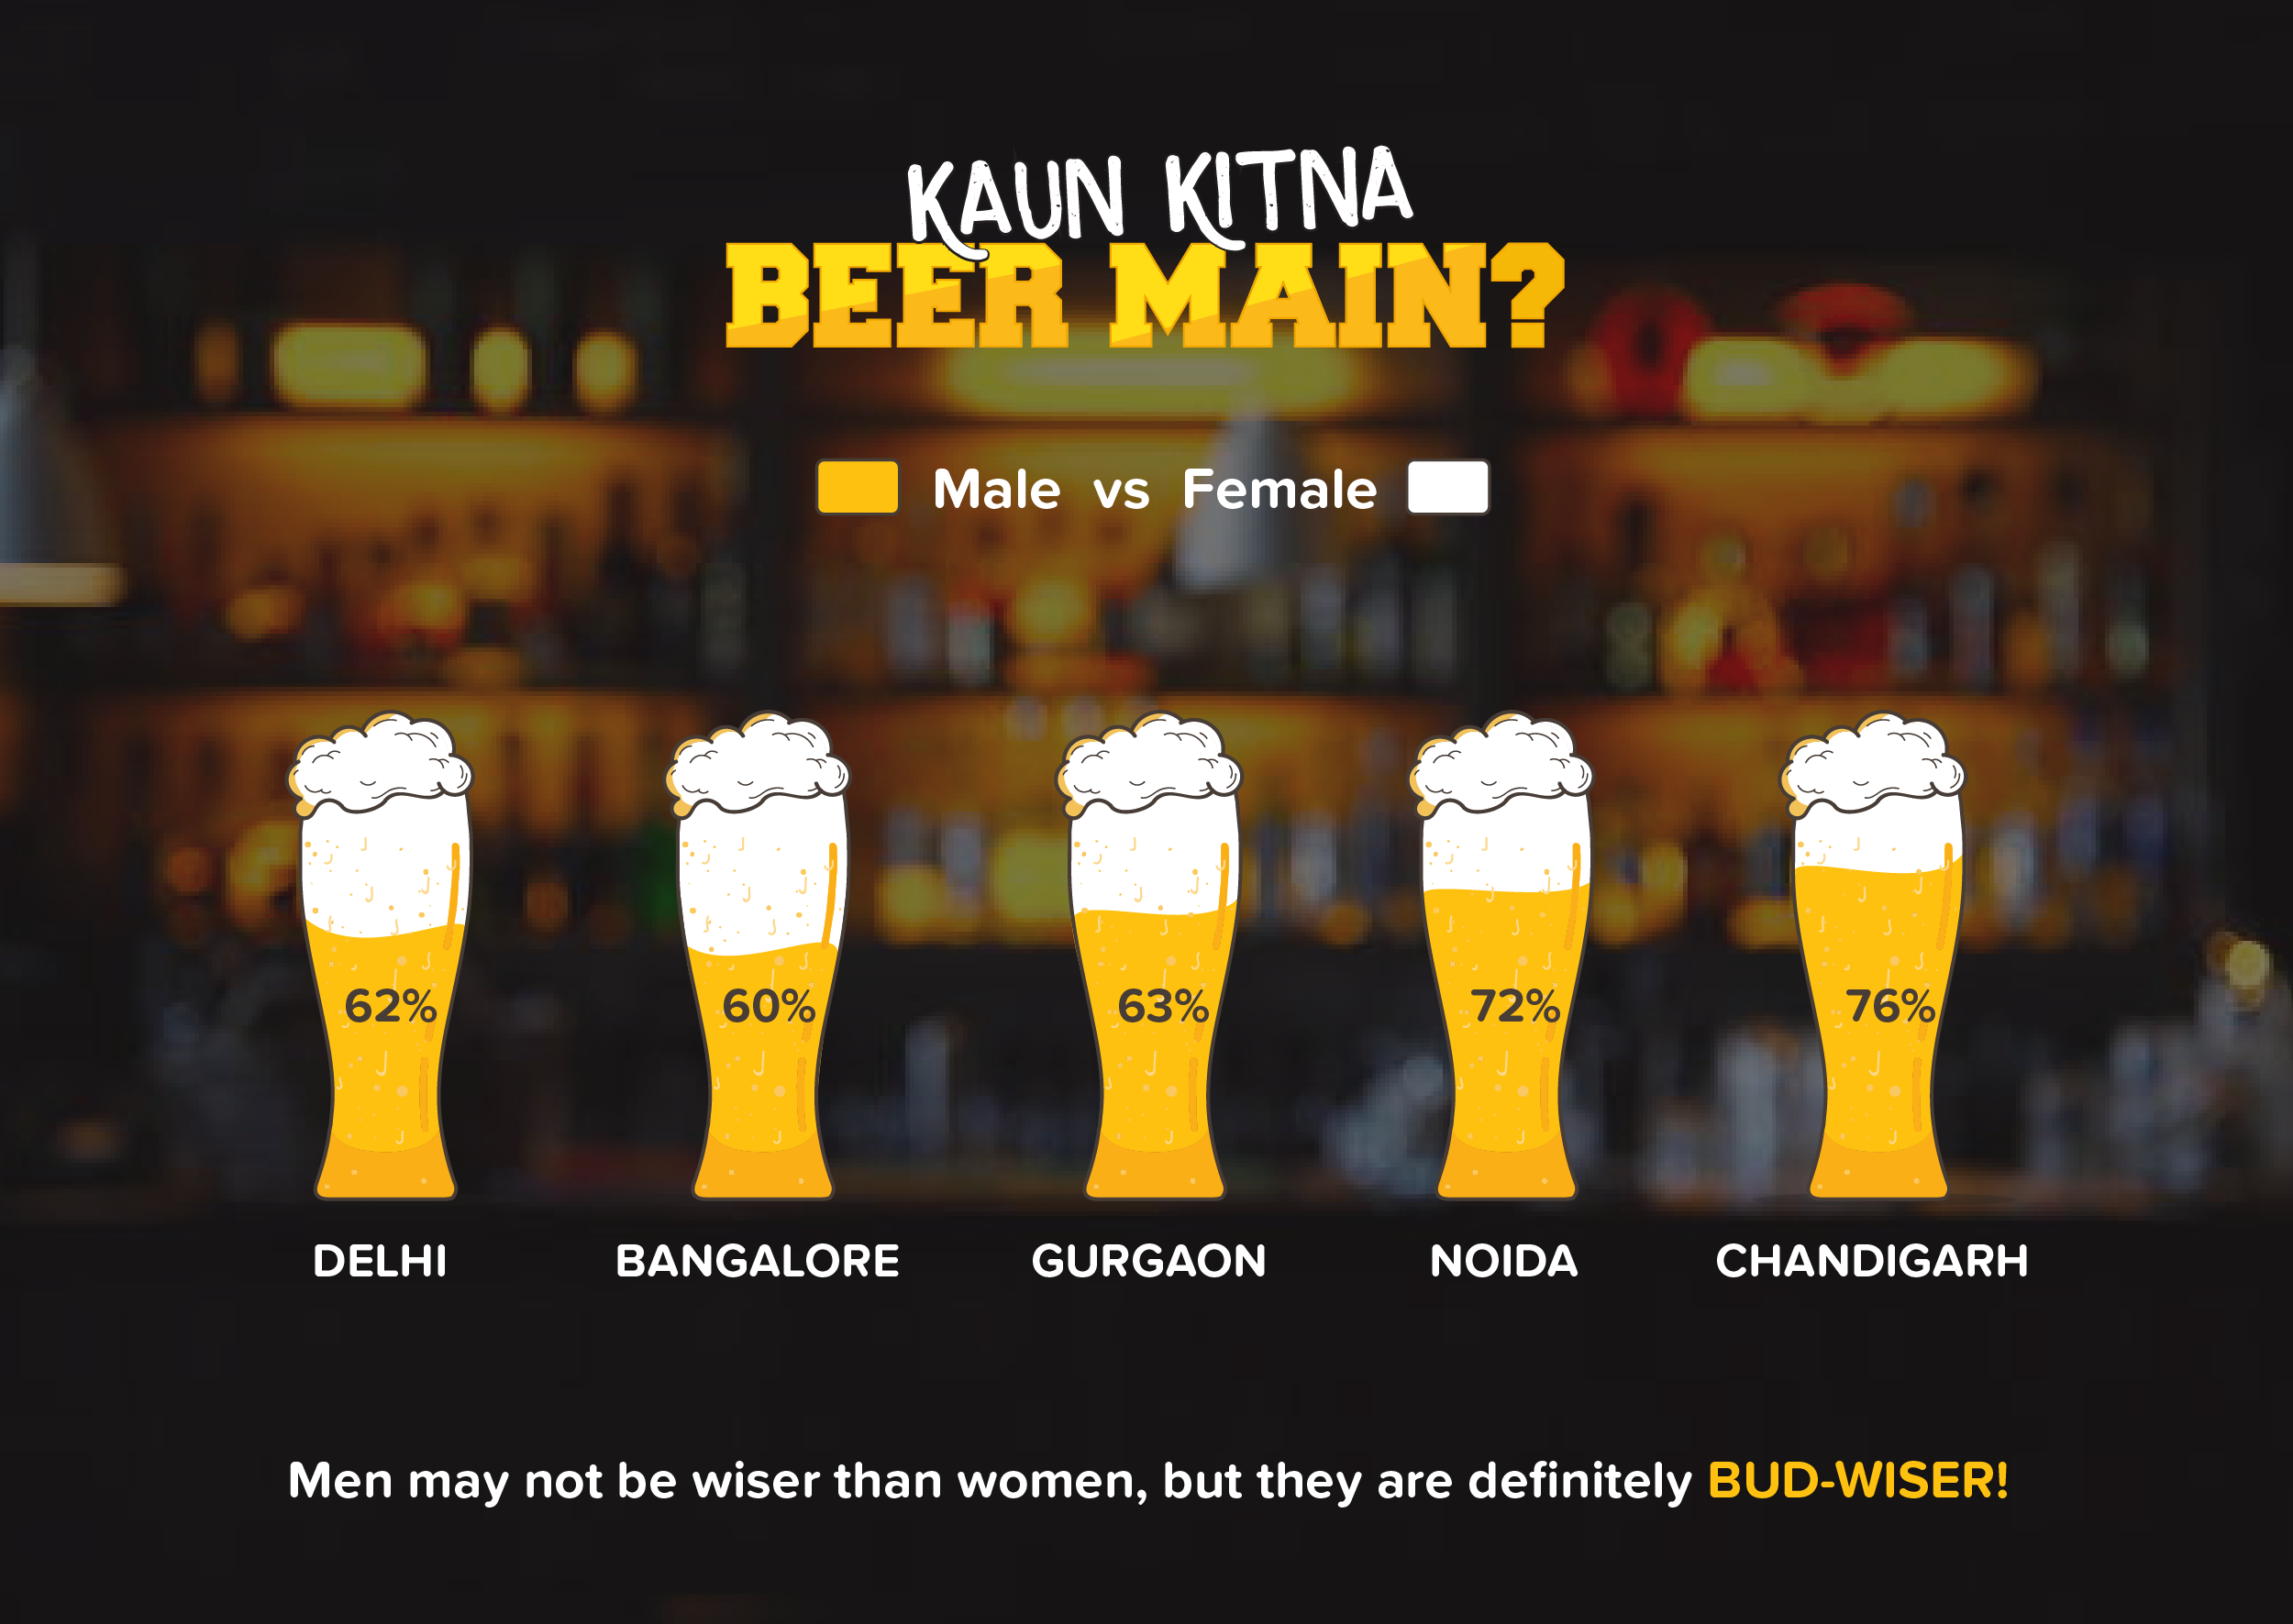 malevsfemaleconsumption-beerinfographic_image